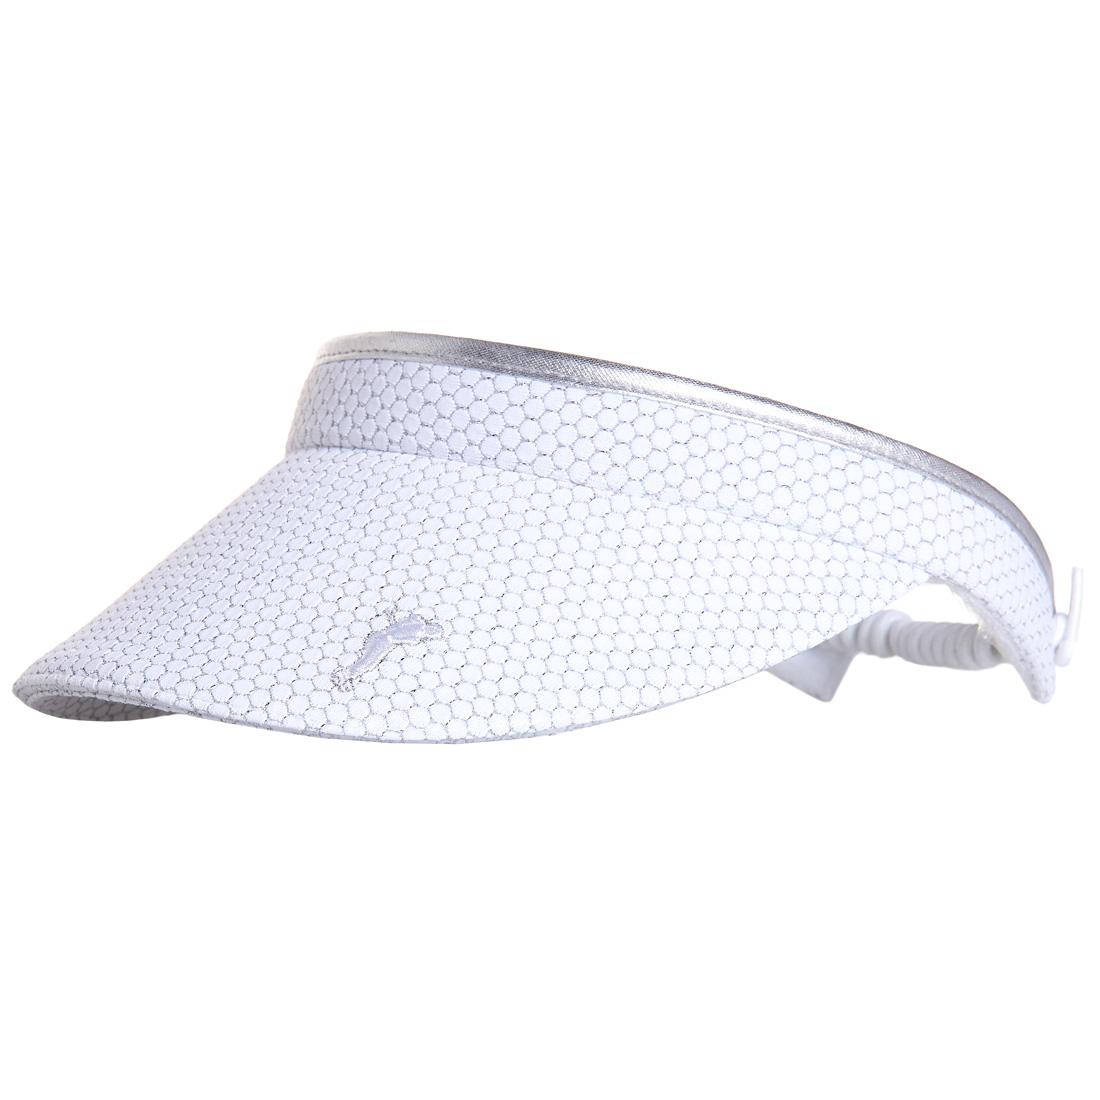 Damen Golf-Visor